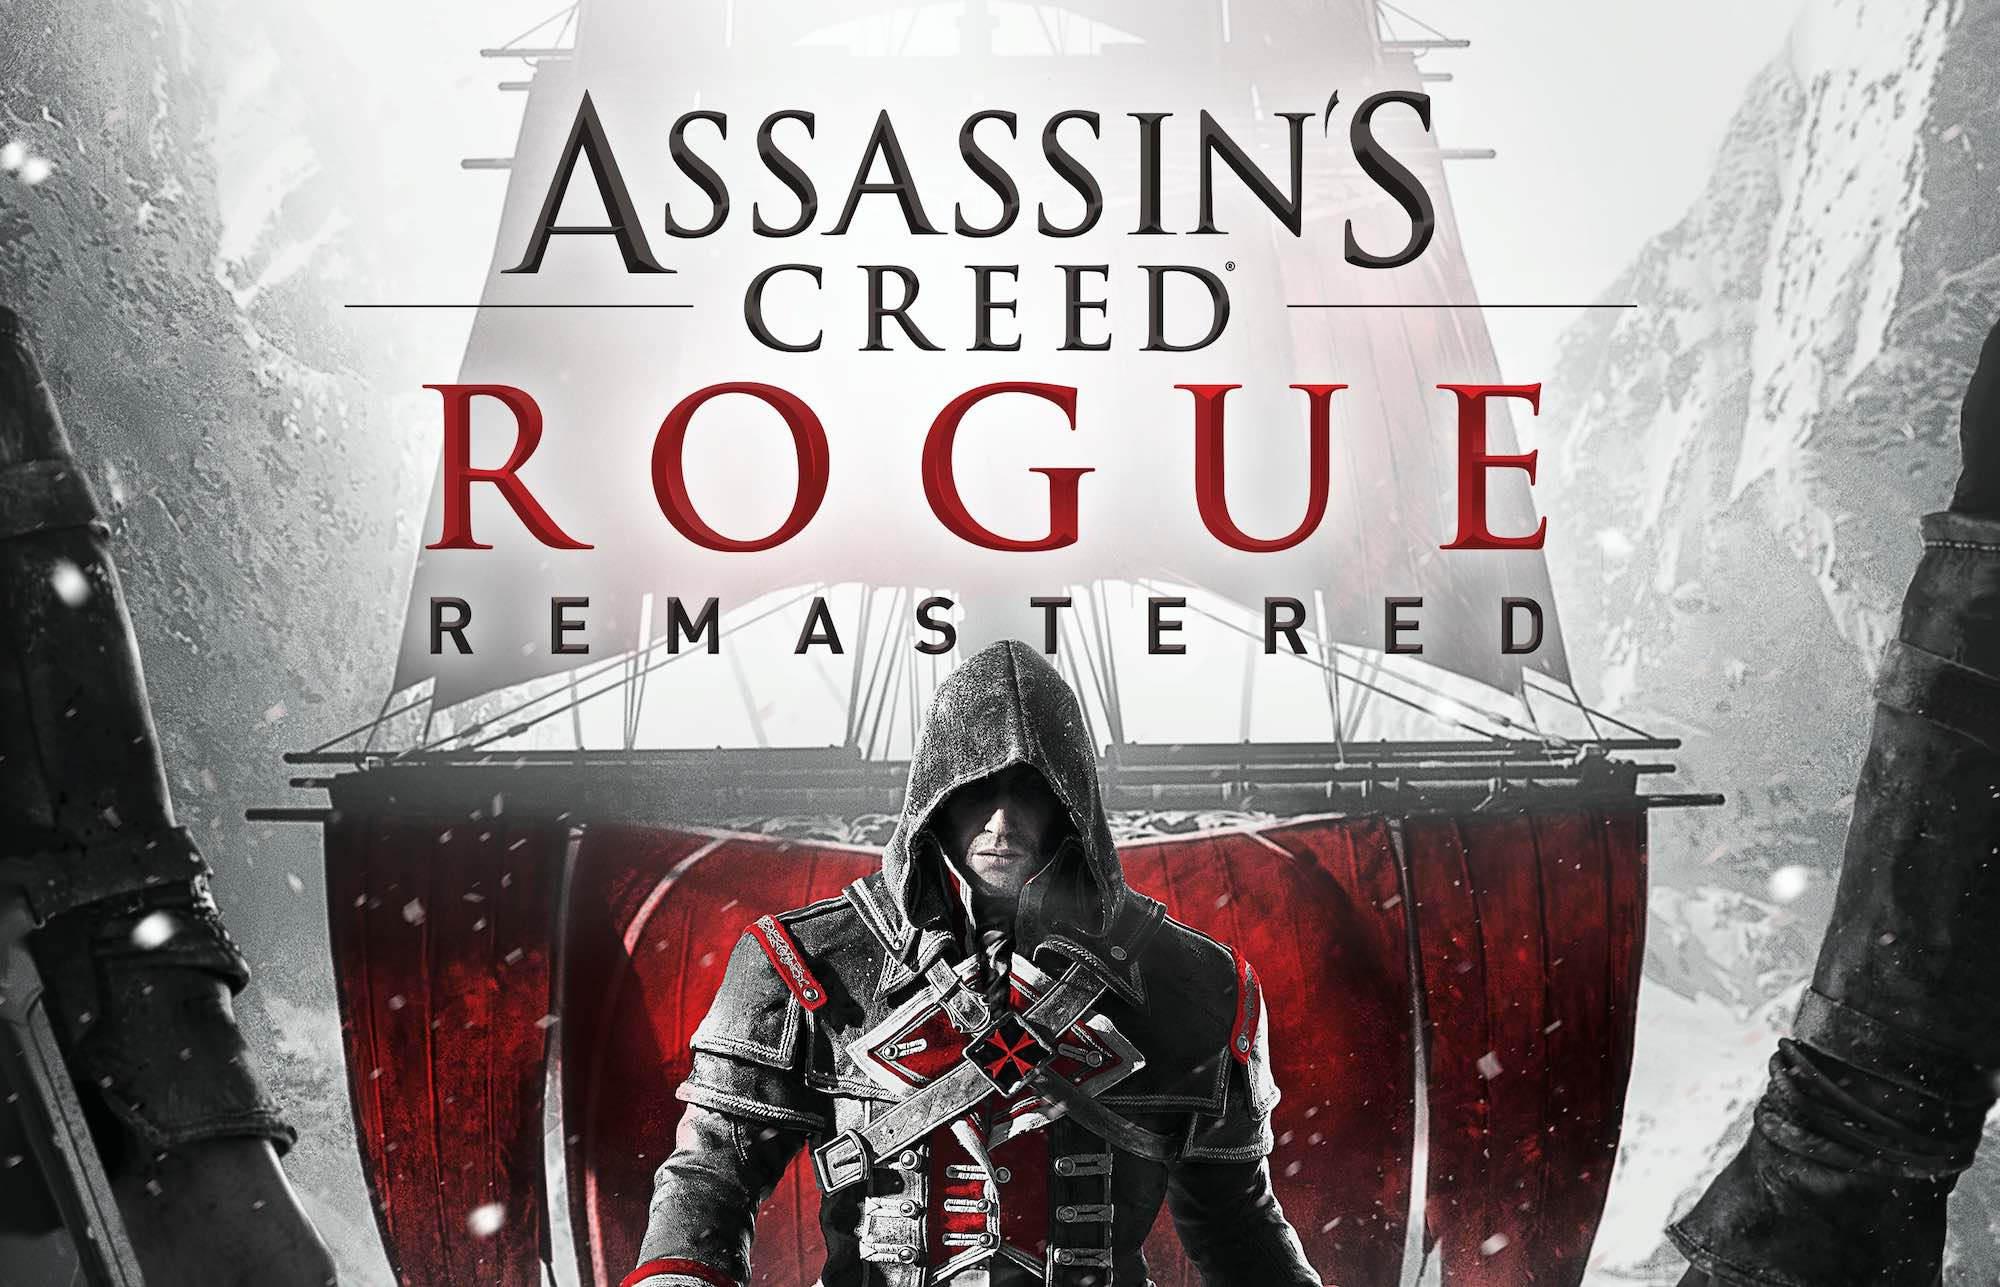 Assassin's Creed Rogue Remastered sets sail in March